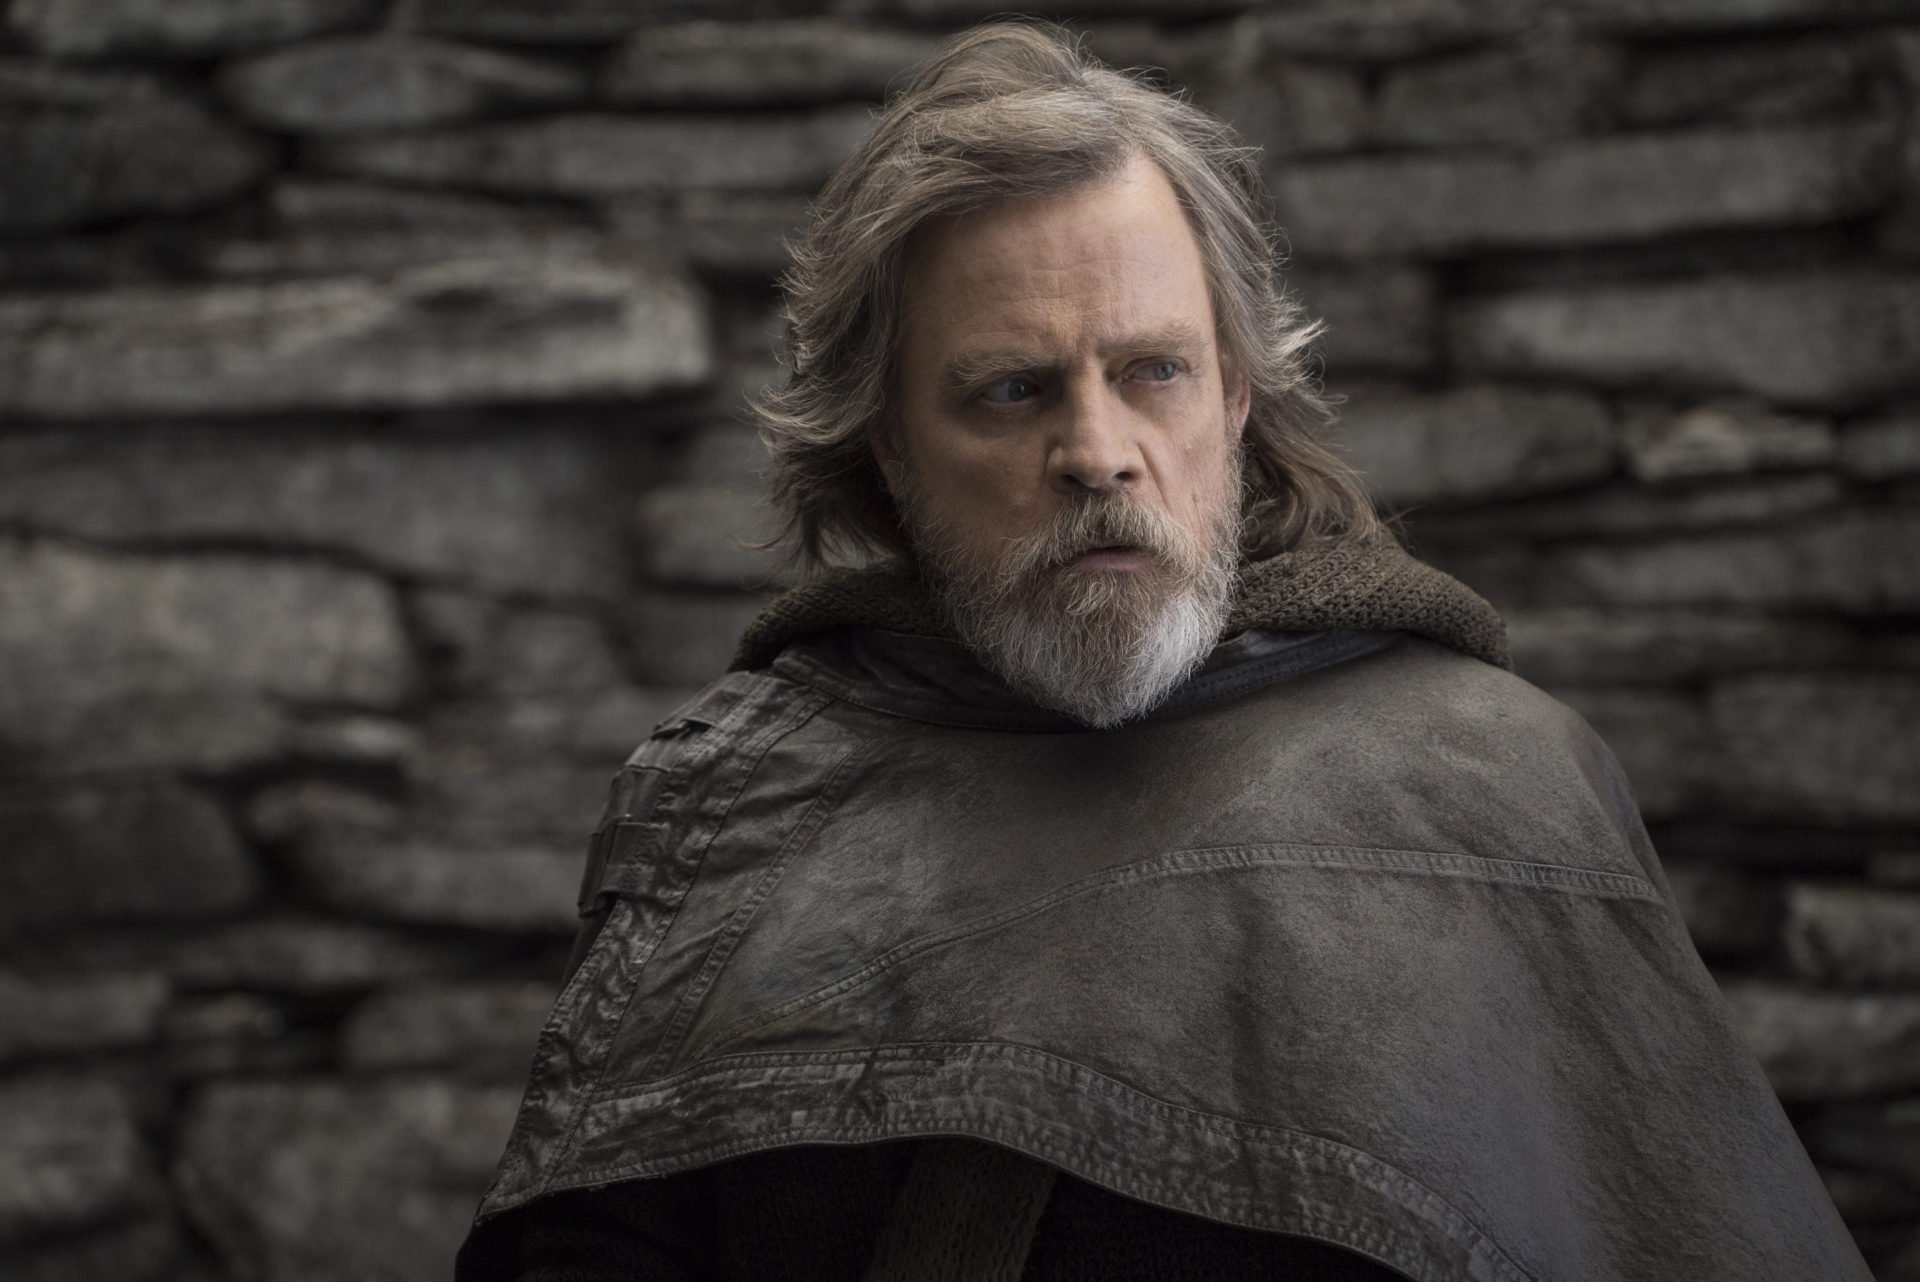 Mark Hamill als Luke Skywalker in Star Wars Die letzten Jedi